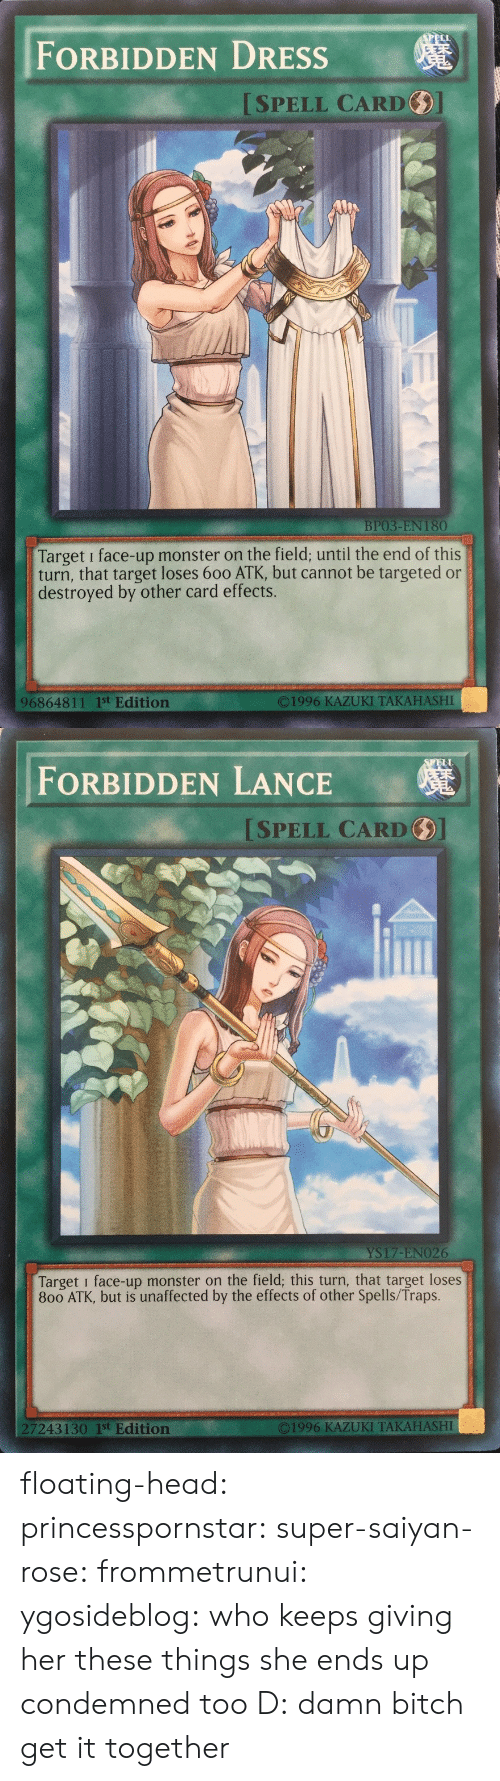 Atk: FORBIDDEN DRESSs  ISPELL CARD  BP03-EN 180  Target i face-up monster on the field; until the end of this  turn, that target loses 600 ATK, but cannot be targeted or  destroyed by other card effects.  O1996 KAZUKI TAKAHASHI  96864811 1st Edition   ELL  FORBIDDEN LANCE  SPELL CARD  YS17-ENO26  Target i face-up monster on the field; this turn, that target loses  800 ATK, but is unaffected by the effects of other Spells/Traps.  7243130 1st Edition  ©1996 KAZUKI TAKAHASHI floating-head:  princesspornstar:  super-saiyan-rose:  frommetrunui:   ygosideblog: who keeps giving her these things   she ends up condemned too D:    damn bitch get it together